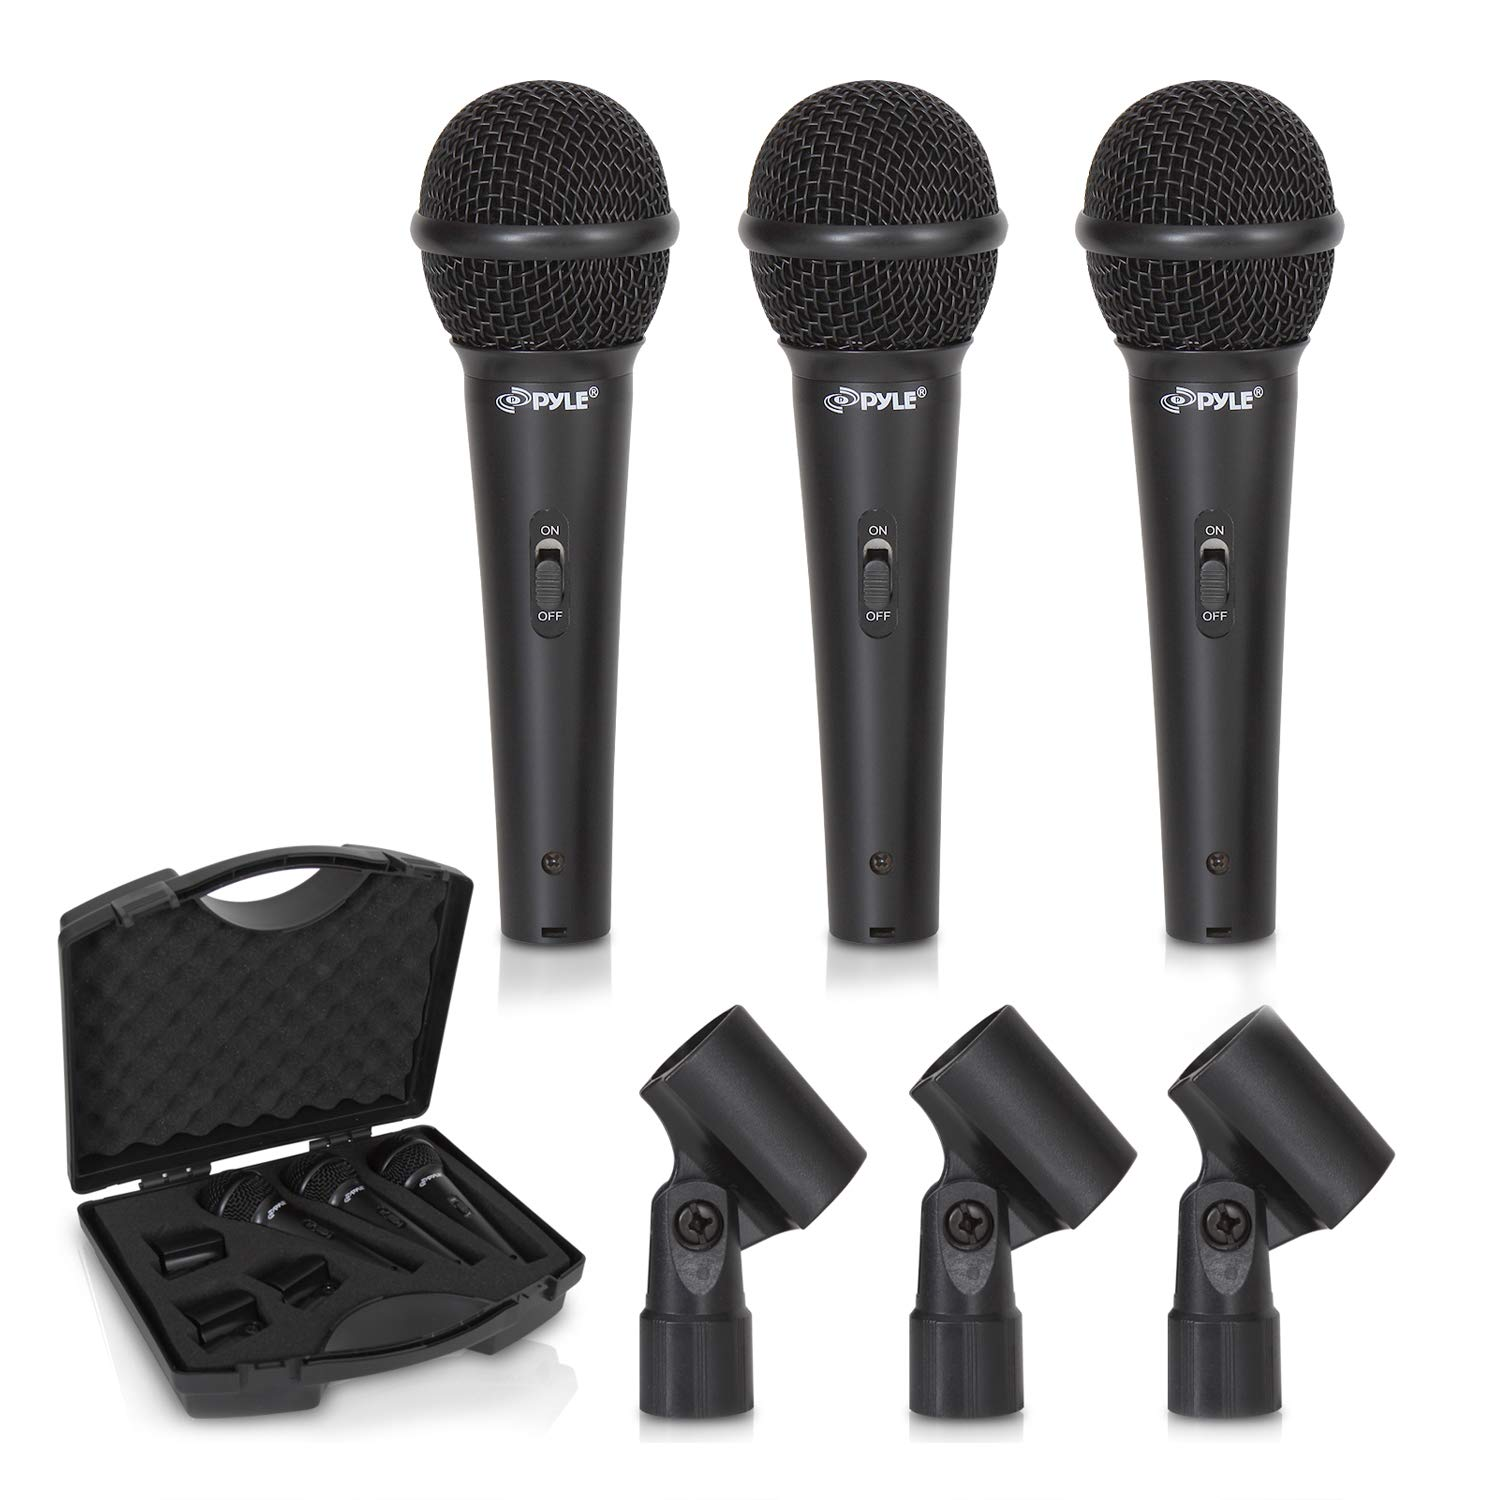 Pyle 3-Piece Professional Dynamic Kit-Cardioid Unidirectional Vocal Handheld Microphone with Hard Carry Case & Mic Holder/Clip, Wicked Purple (PDMICKT80.5) by Pyle